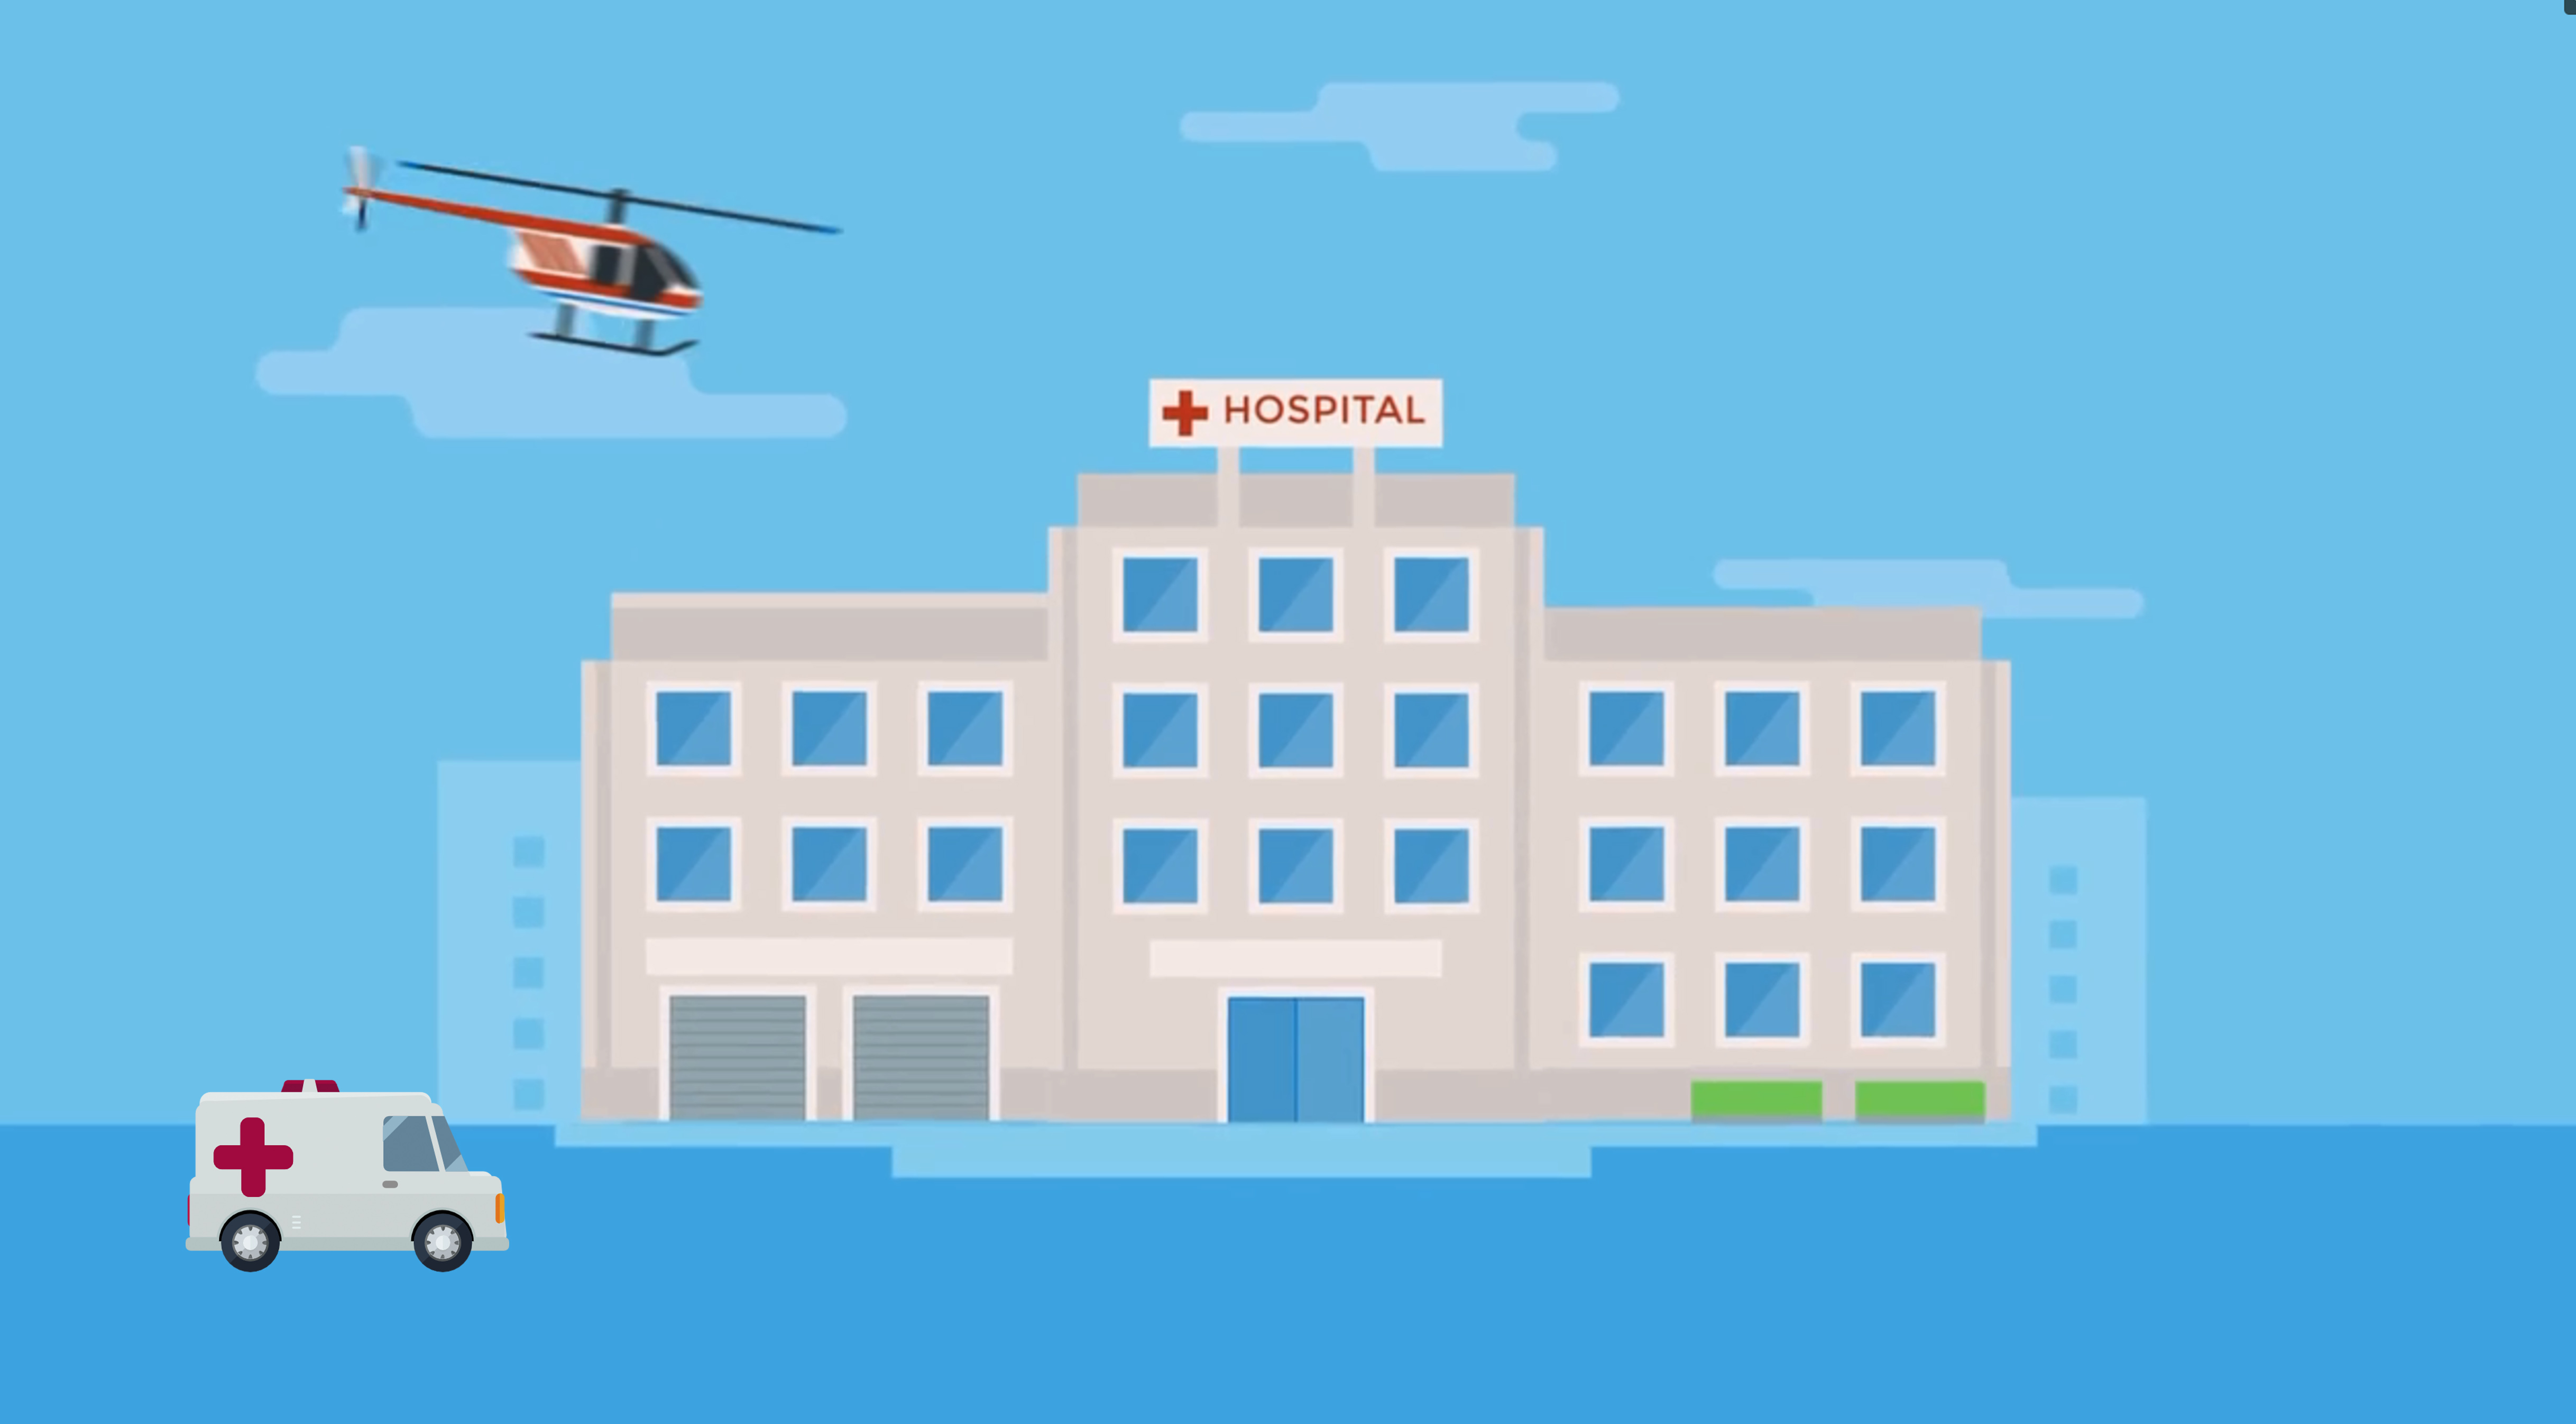 Hospital and Helicopter